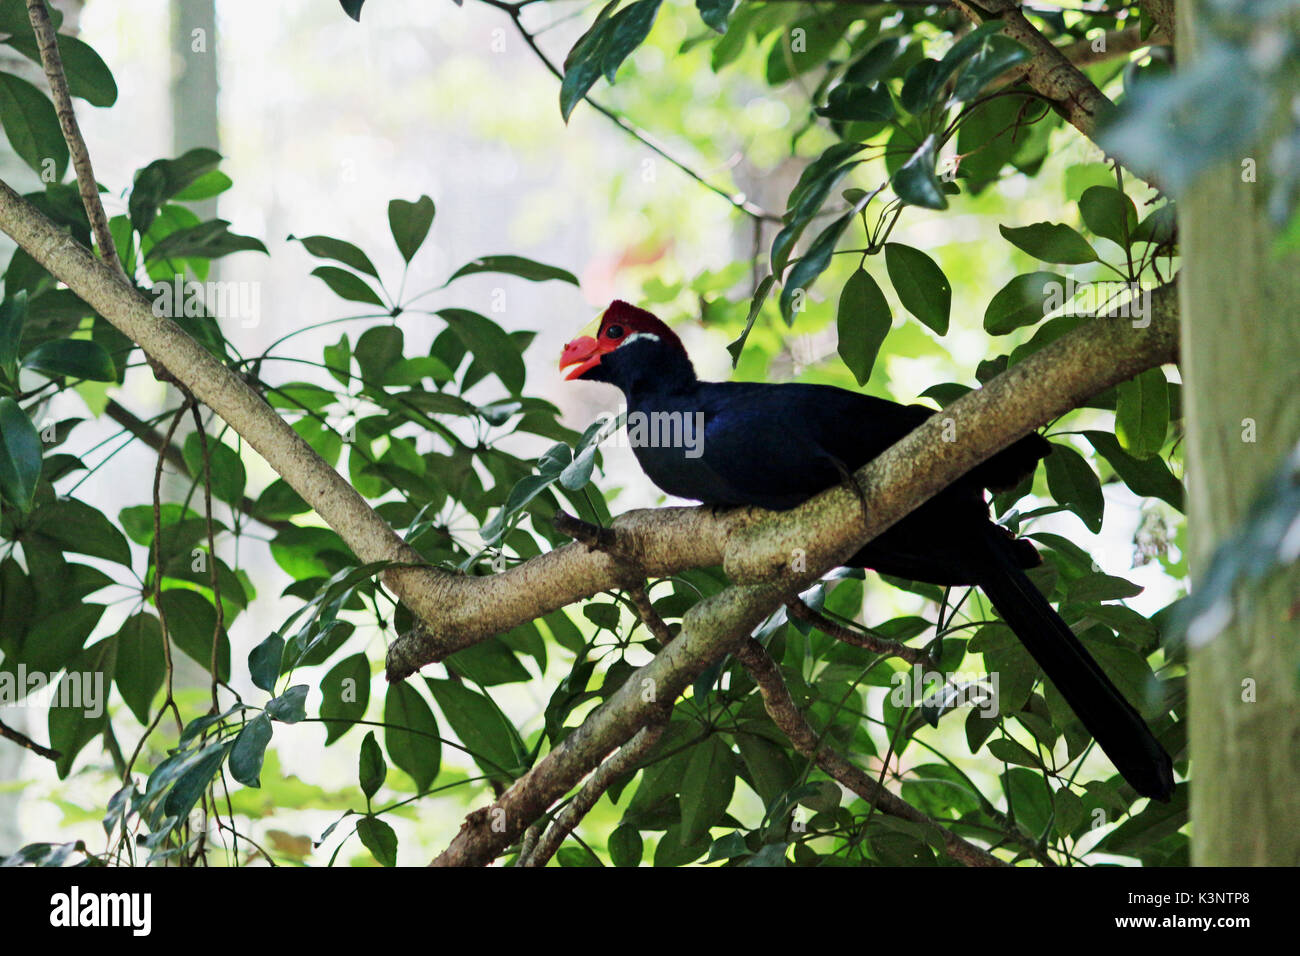 A Violet Turaco Bird Perched on a Tree Branch - Stock Image